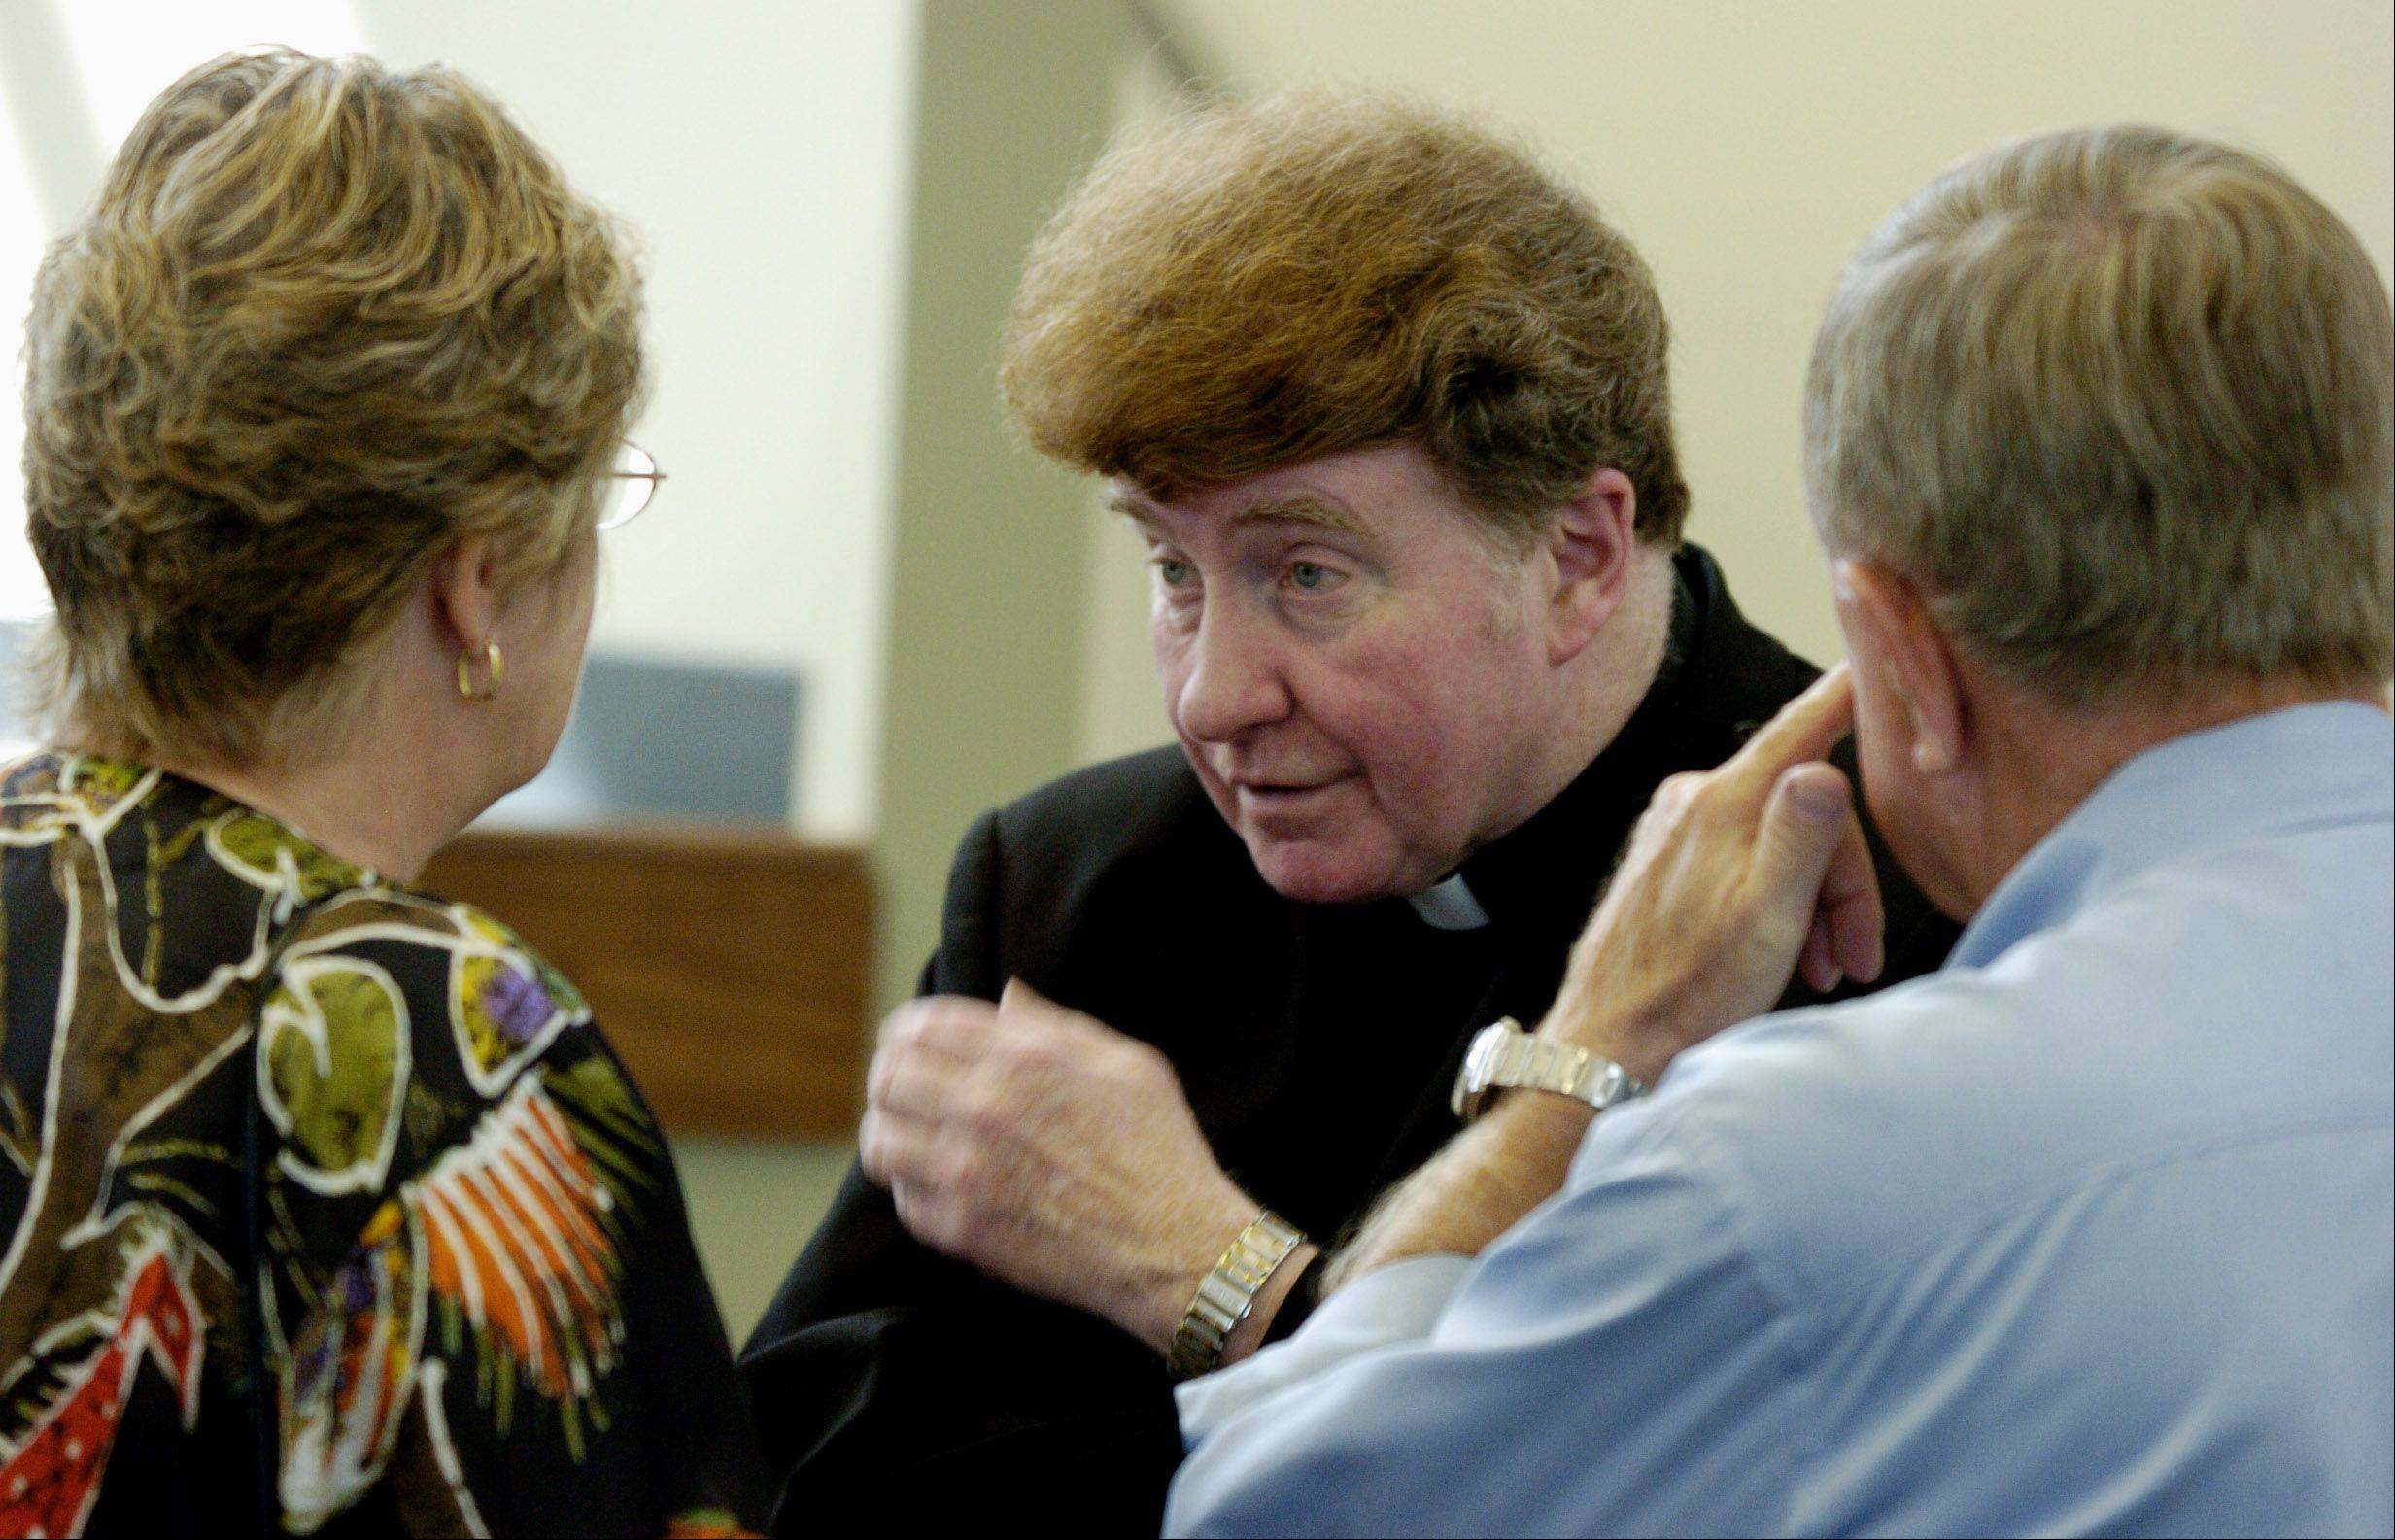 The Rev. Patrick Brennan, shown here speaking with parishioners at Holy Family Parish in Inverness after the dedication of a parish center bearing his name, died Saturday at 66. He�s being remembered as an inspirational leader and speaker who helped grow the church by more than 1,000 families.